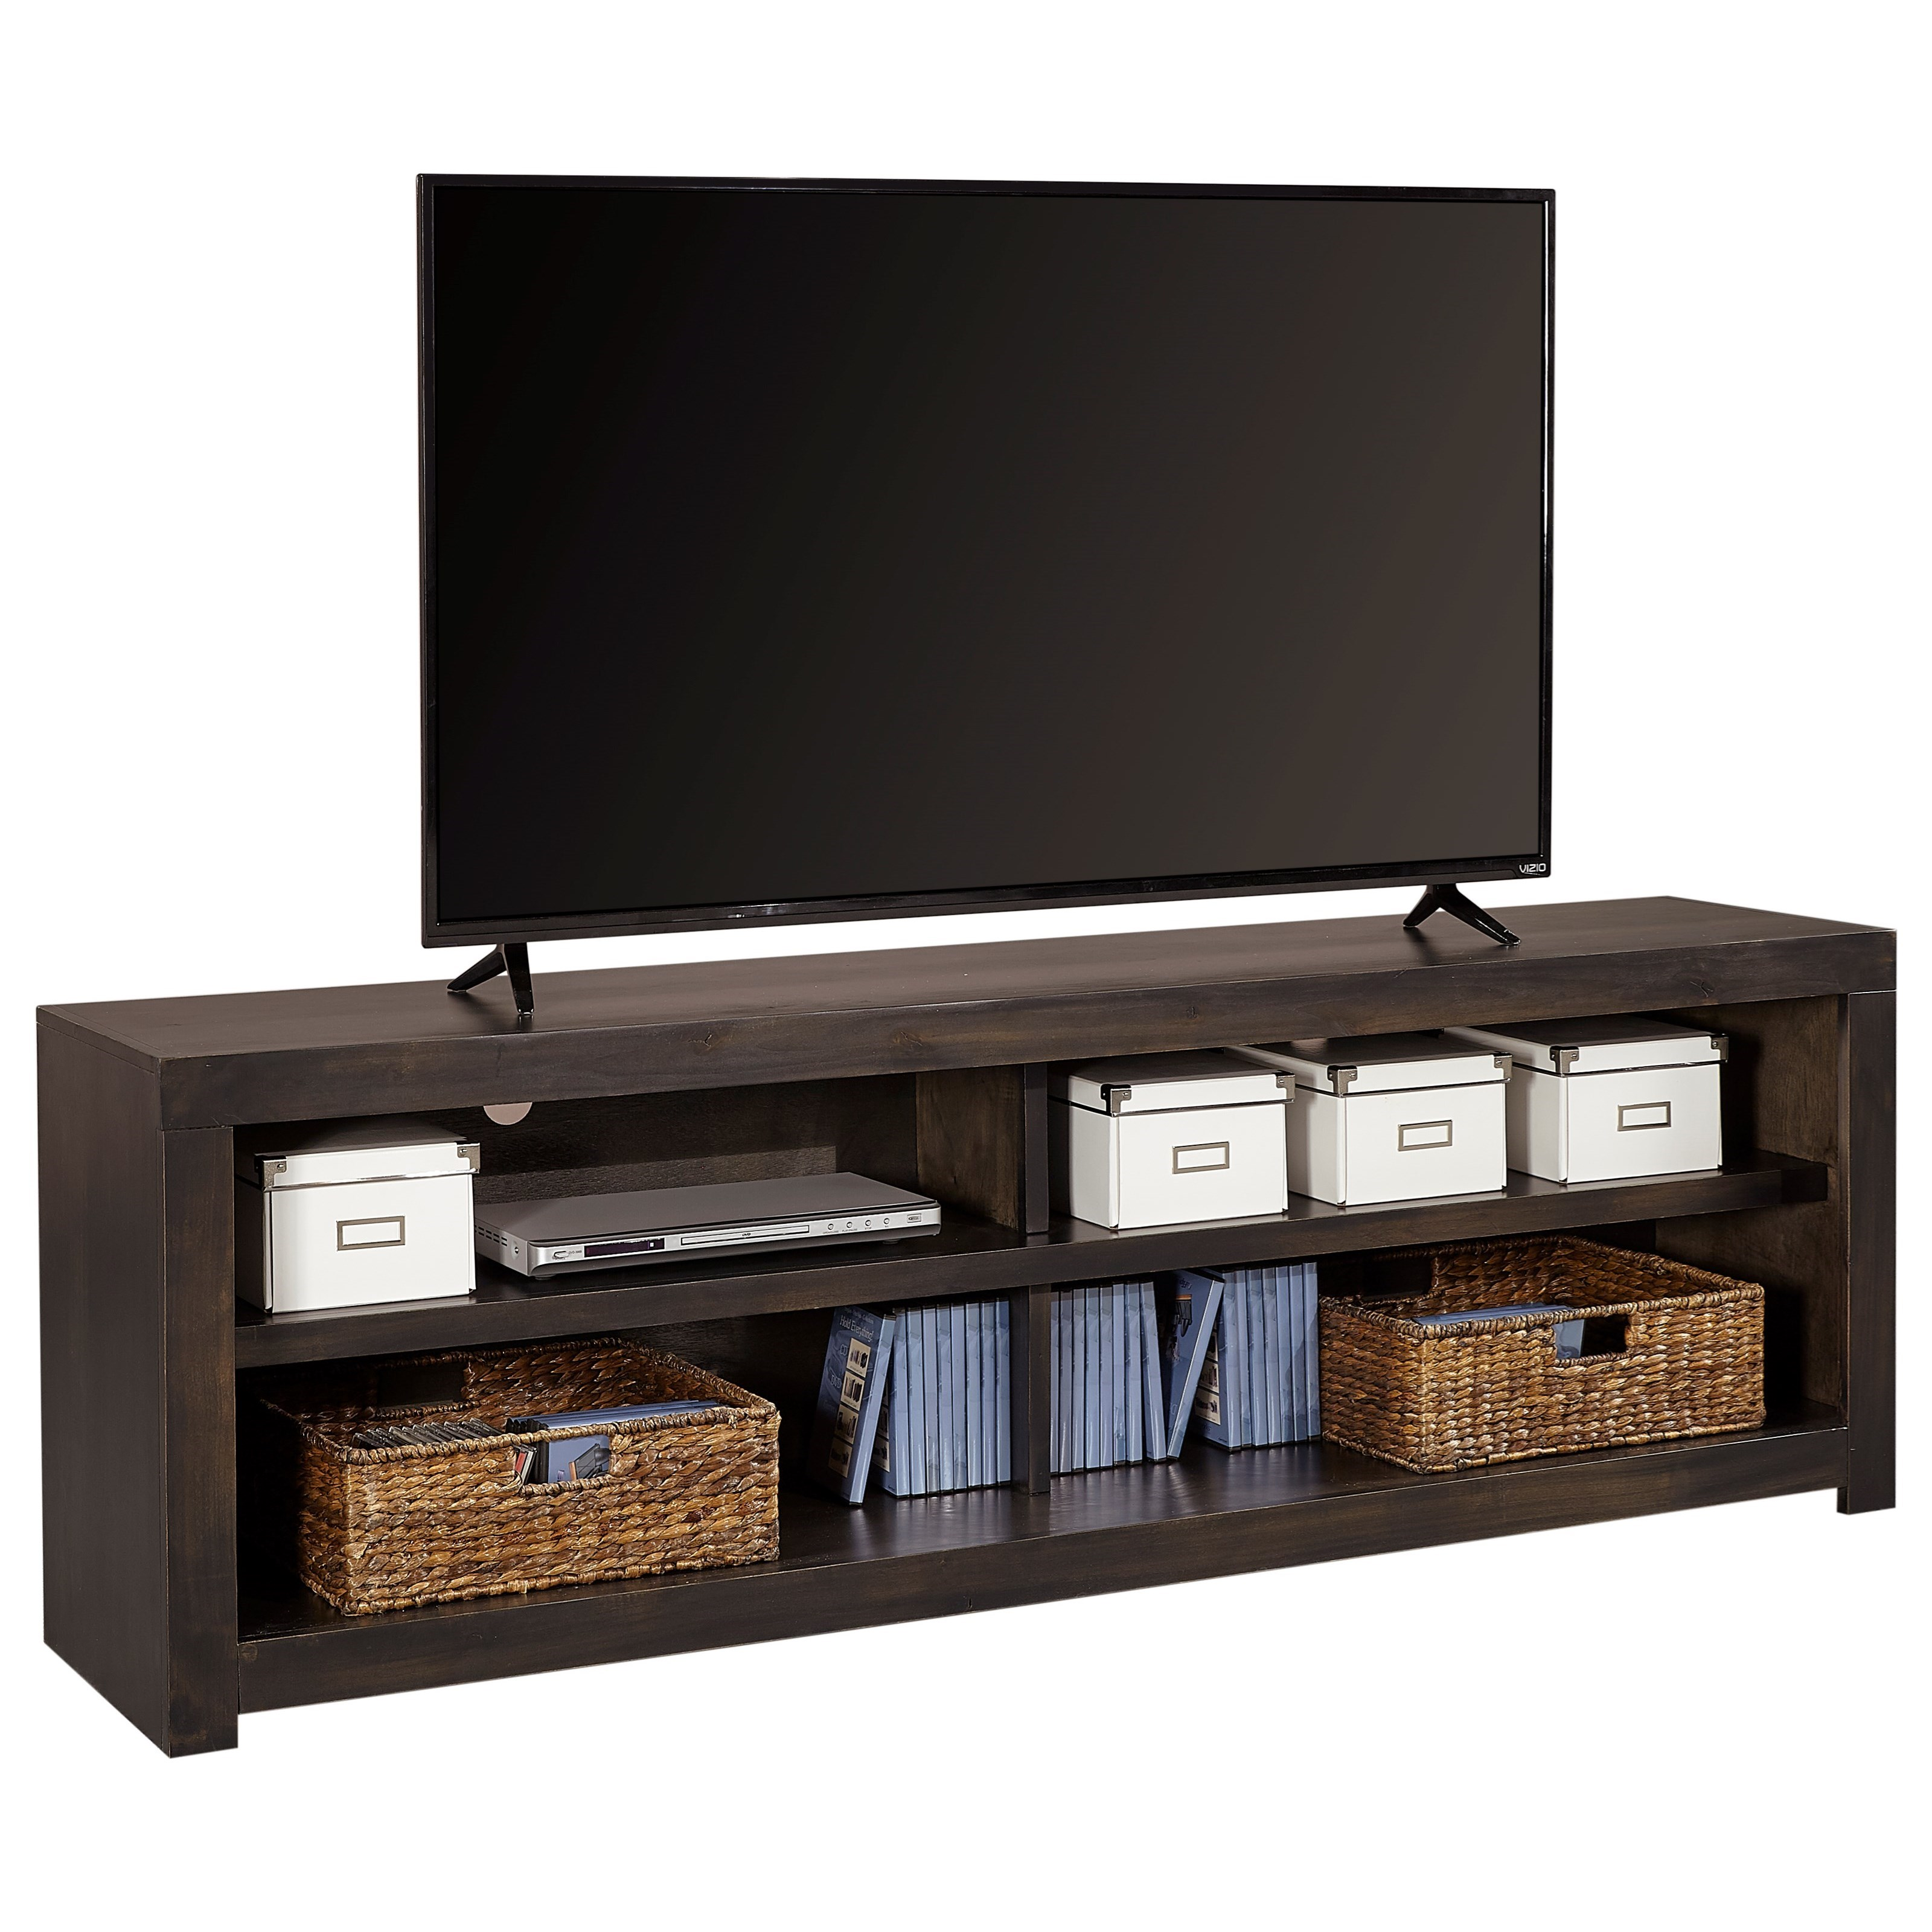 "Avery Loft 74"" TV Console by Aspenhome at Godby Home Furnishings"